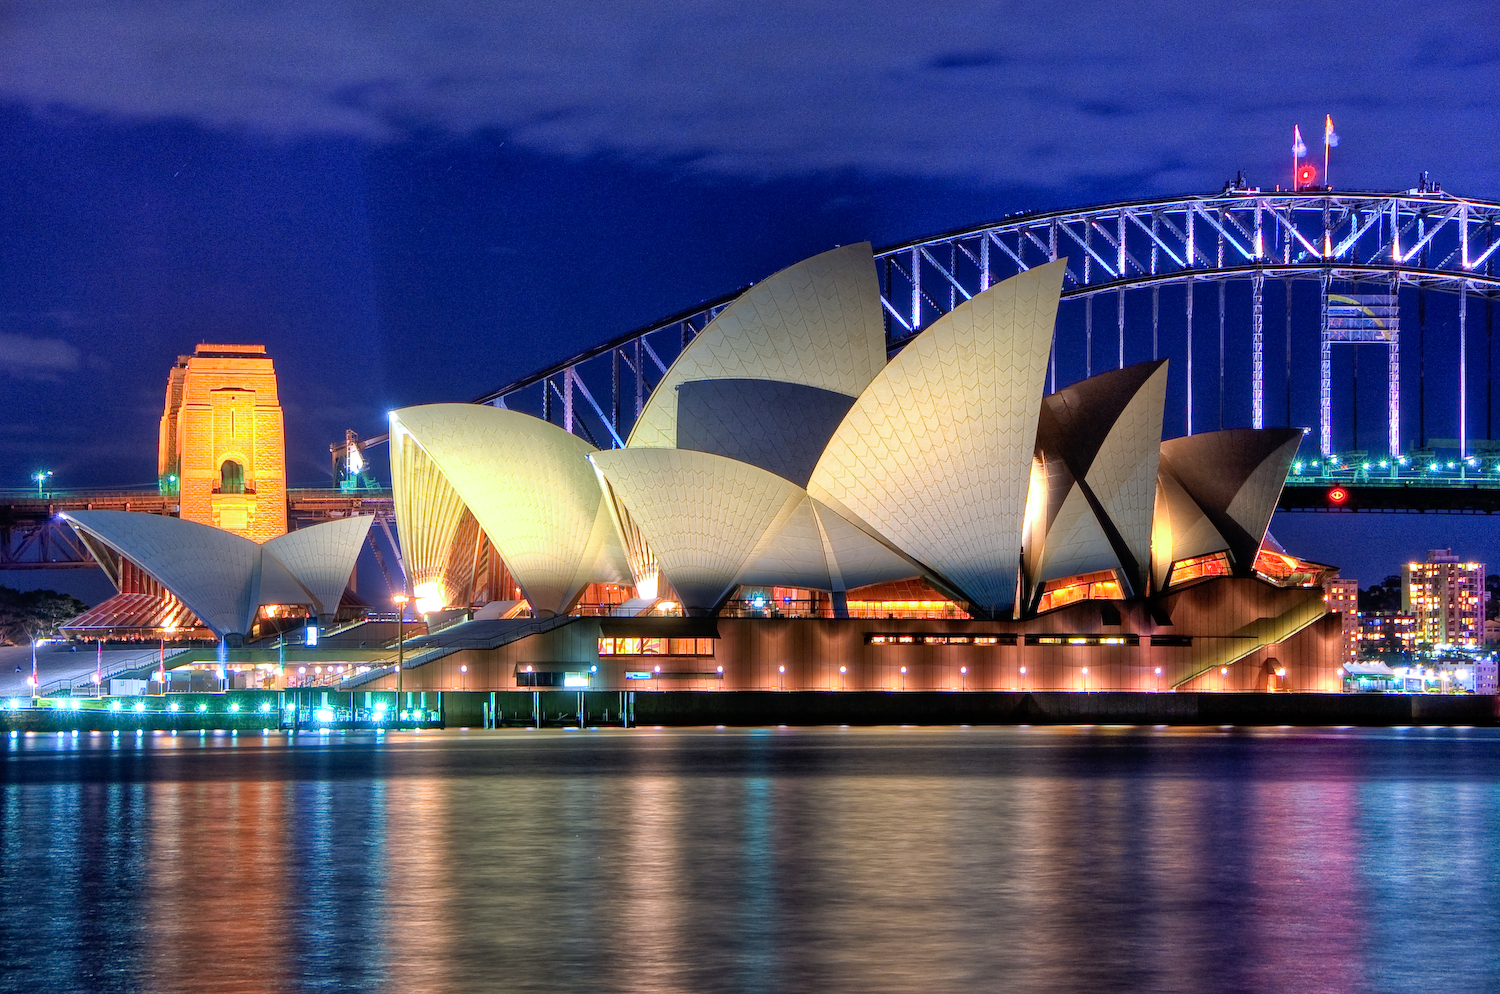 By Hai Linh Truong from Sydney, NSW, Australia (Sydney Opera House Close up HDR Sydney Australia) [CC BY 2.0 (https://creativecommons.org/licenses/by/2.0)], via Wikimedia Commons